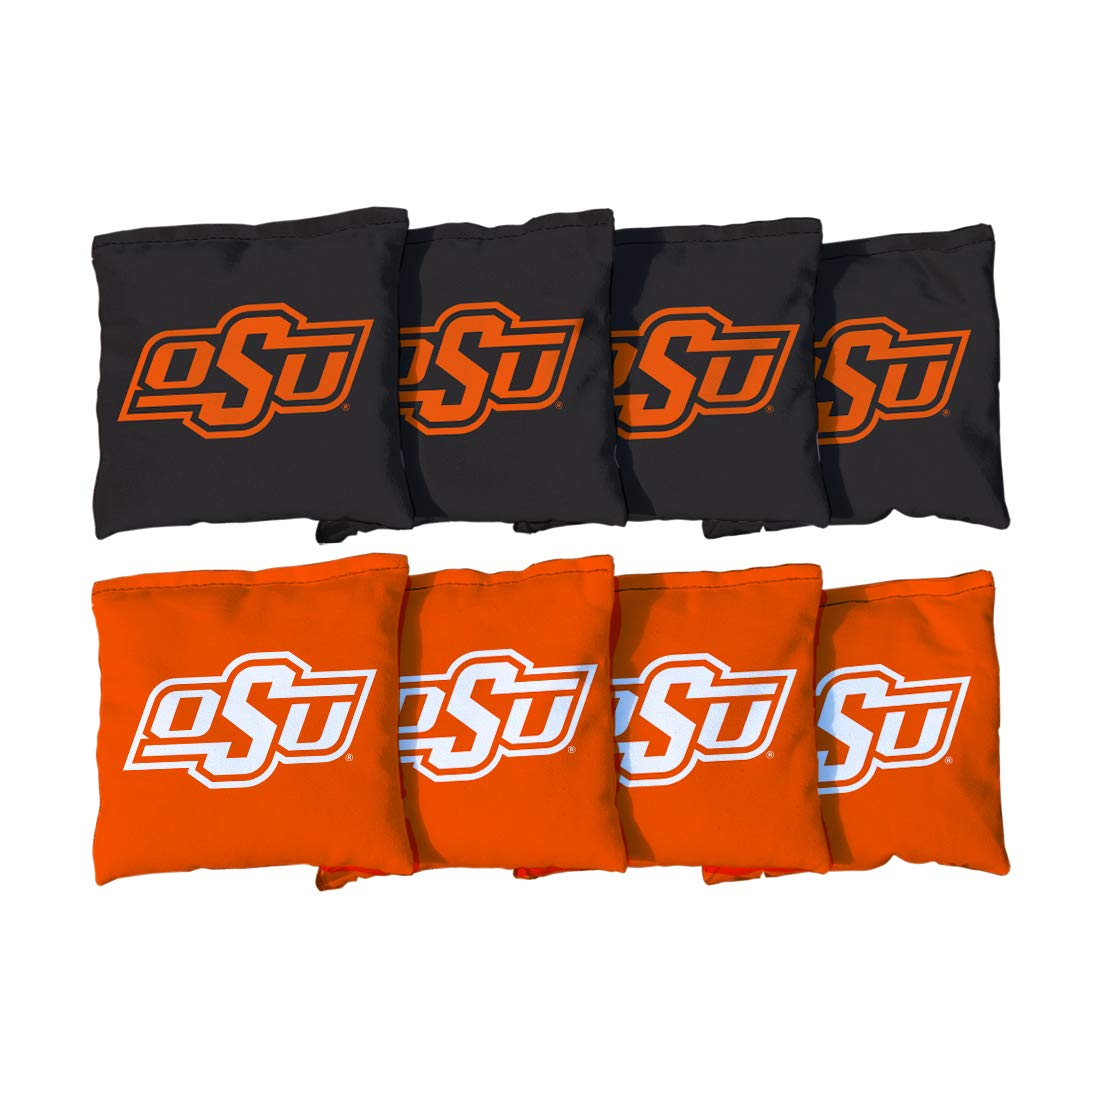 Victory Tailgate NCAA Collegiate Regulation Cornhole Game Bag Set (8 Bags Included, Corn-Filled) - Oklahoma State University Cowboys by Victory Tailgate